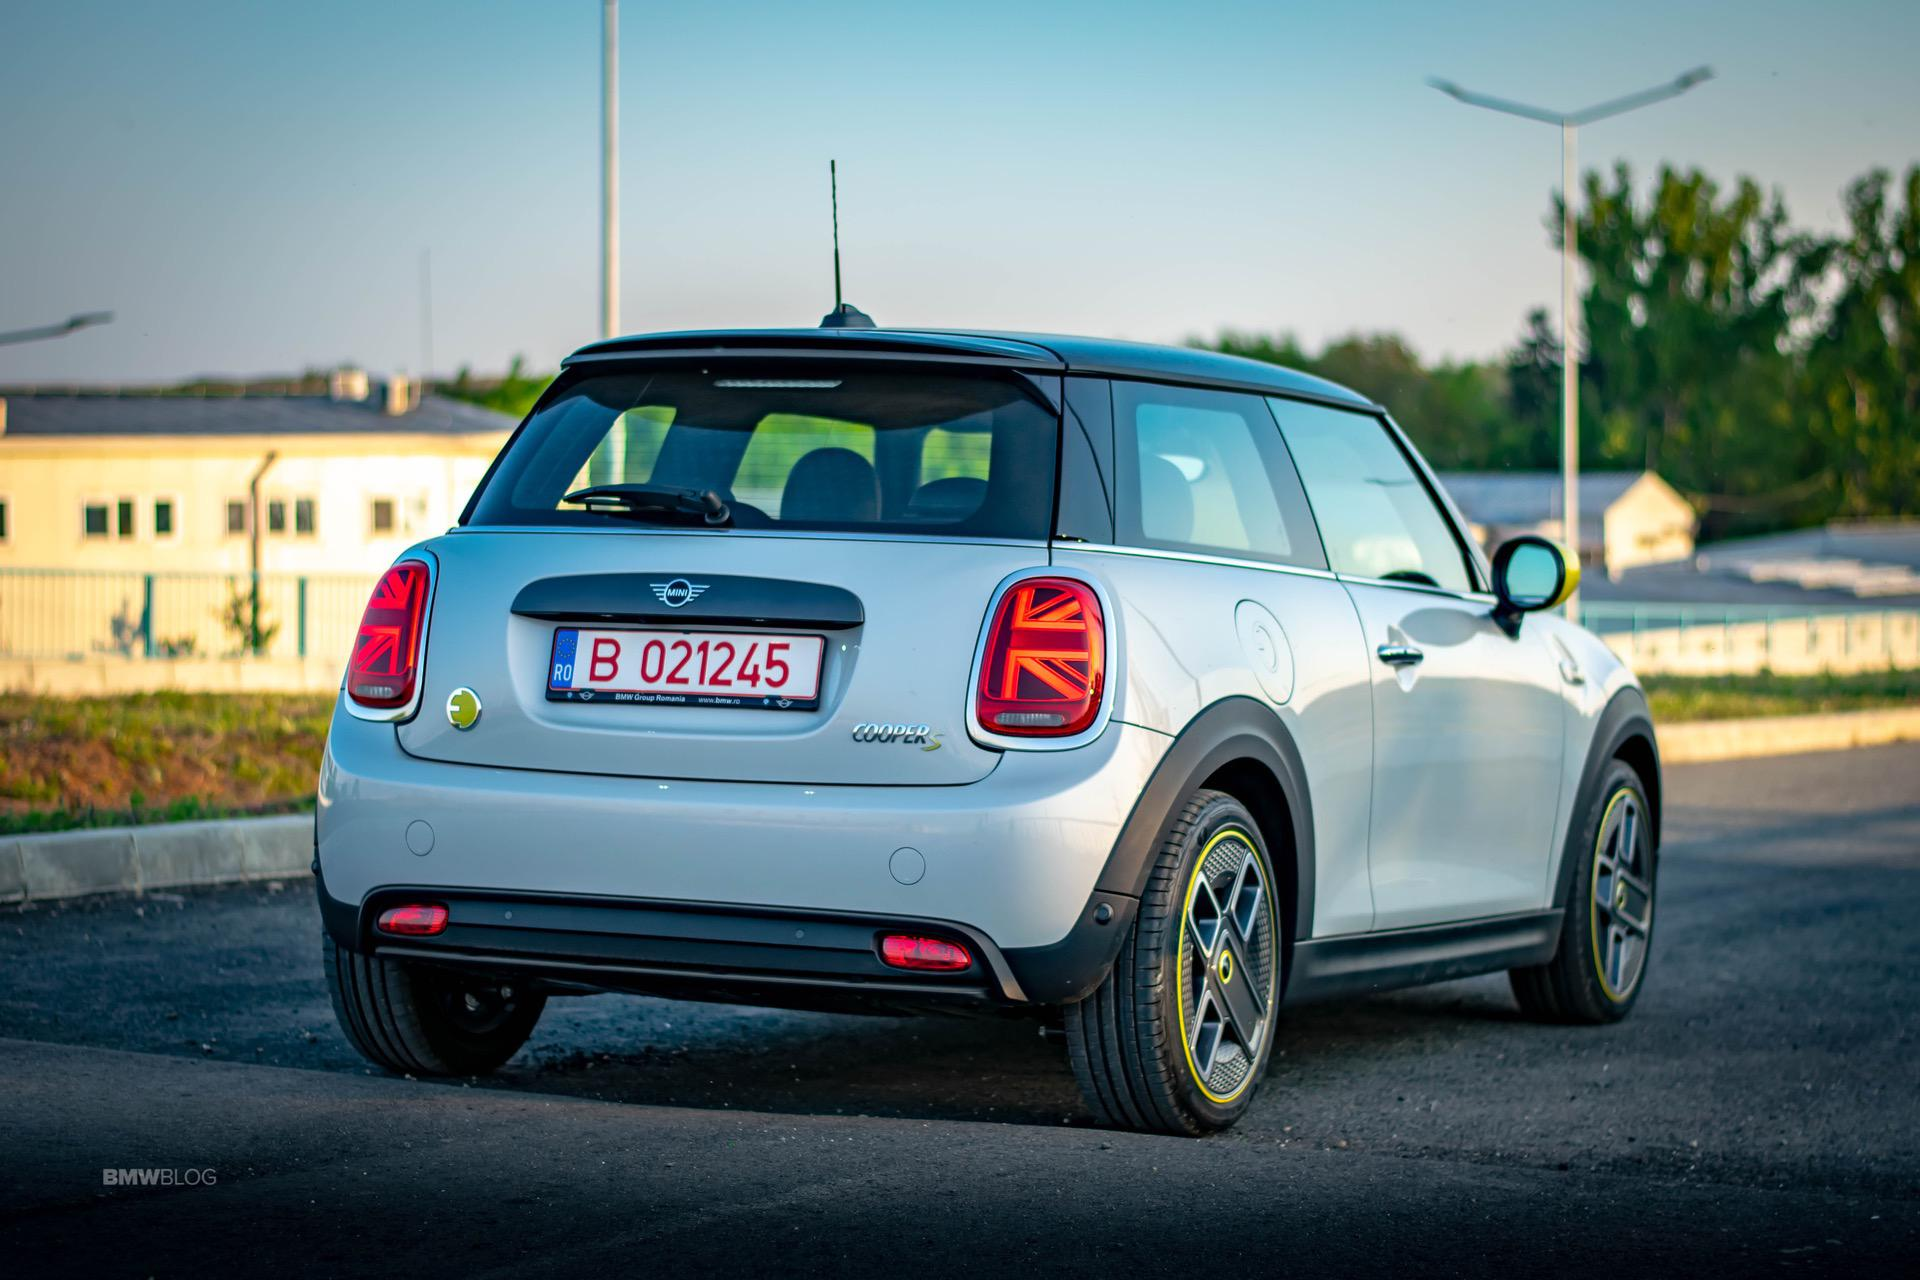 TEST DRIVE: 2020 MINI Cooper SE - The City Car For You